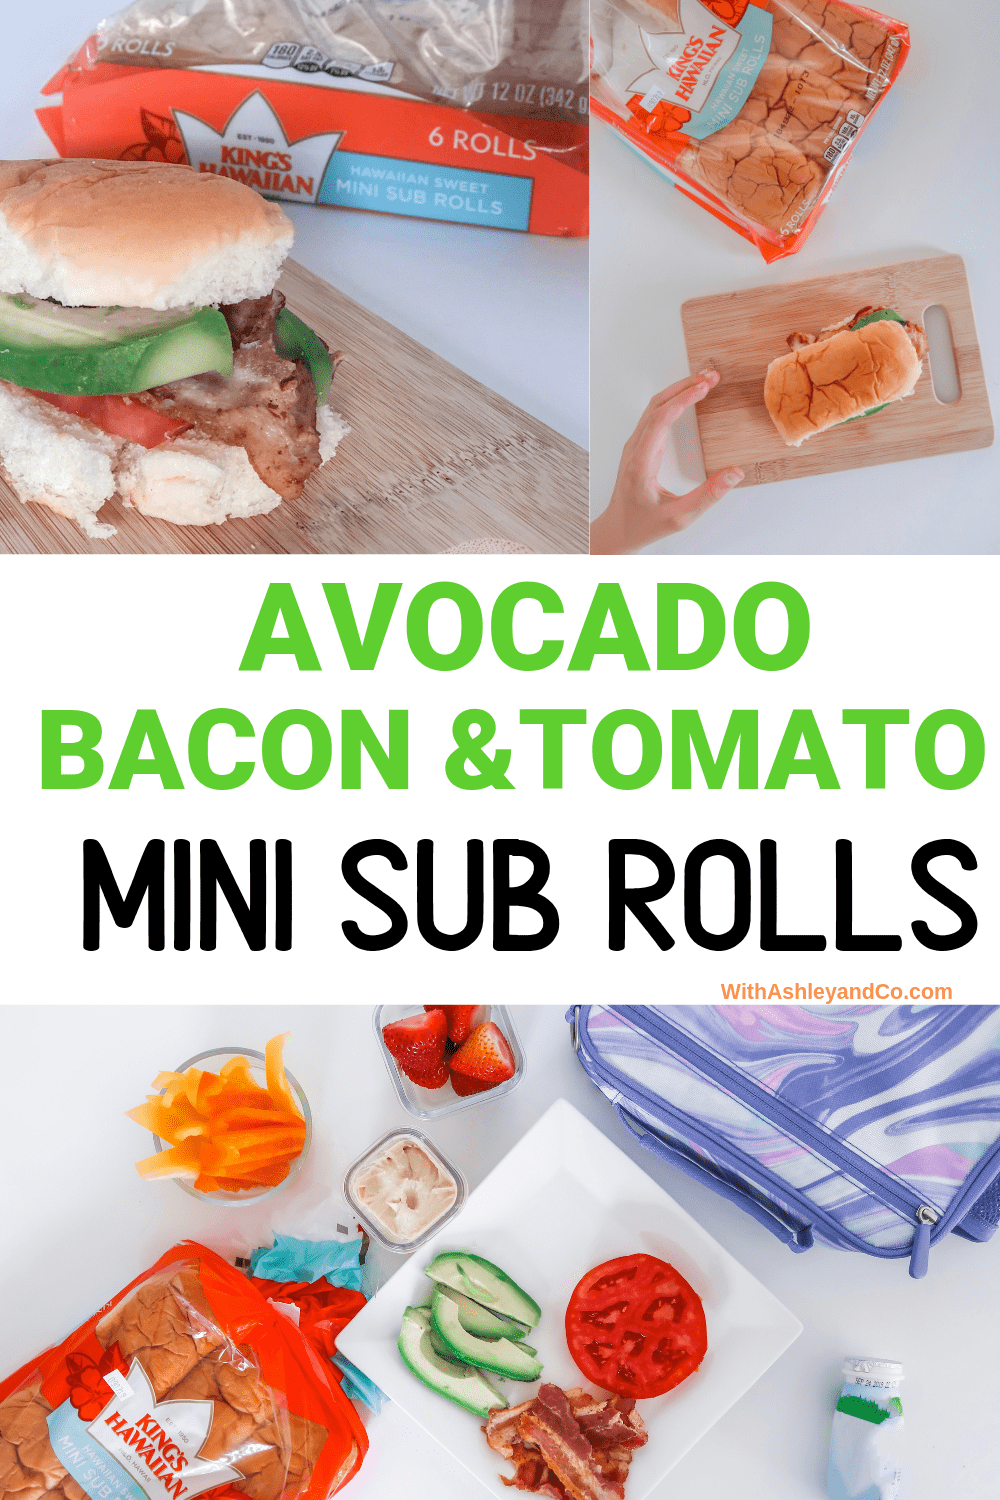 Avocado Bacon Tomato Mini Sub Rolls